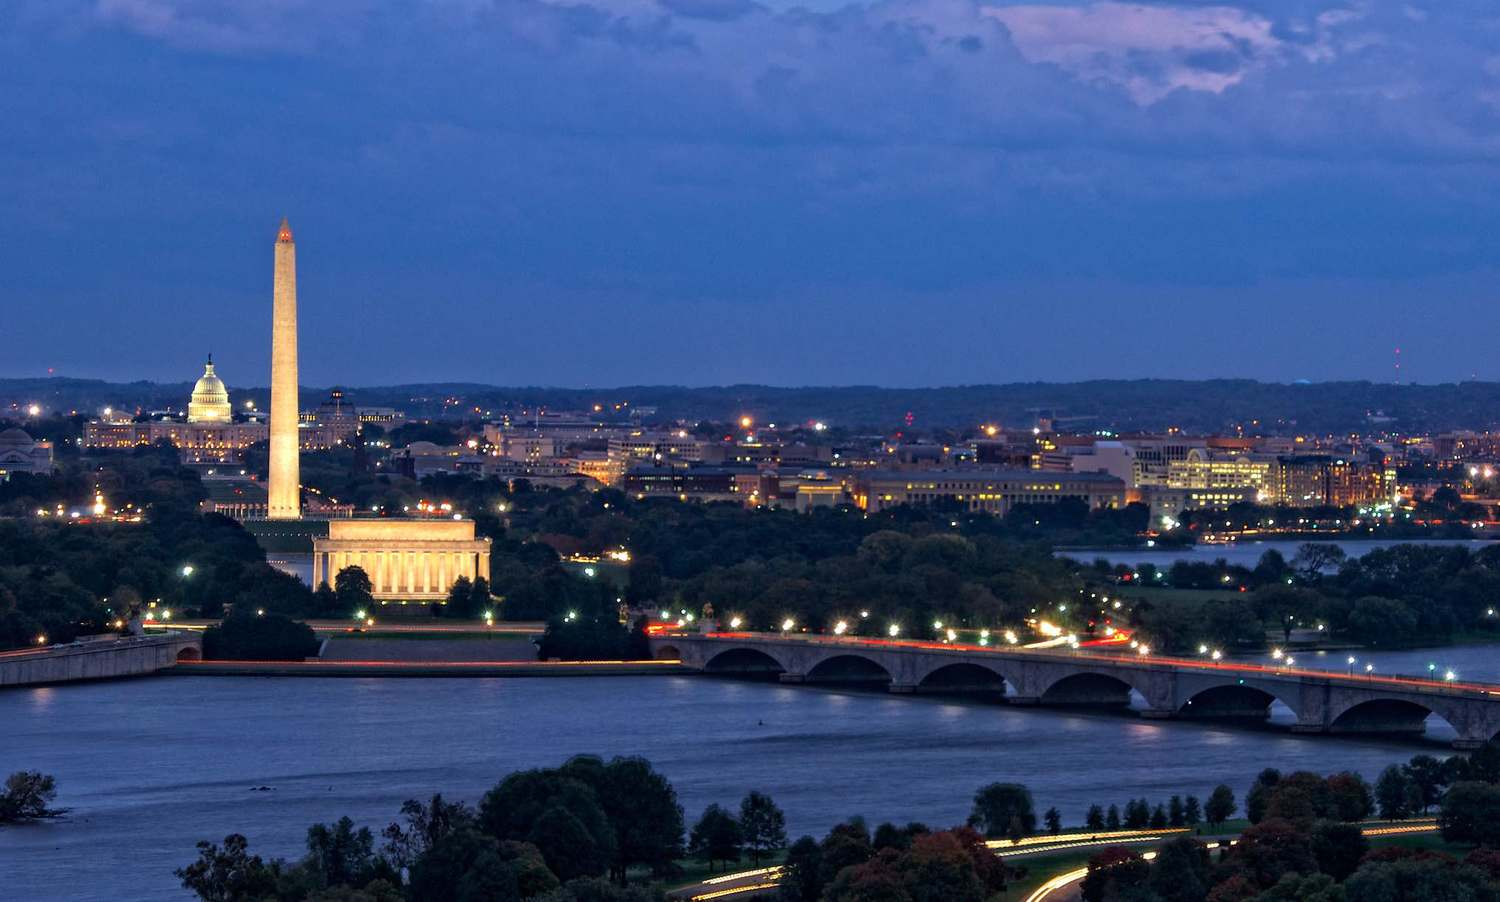 Best Washington Dc Hotels With 5 Star Views The Most Perfect View - Stunning-art-deco-with-spectacular-river-and-city-views